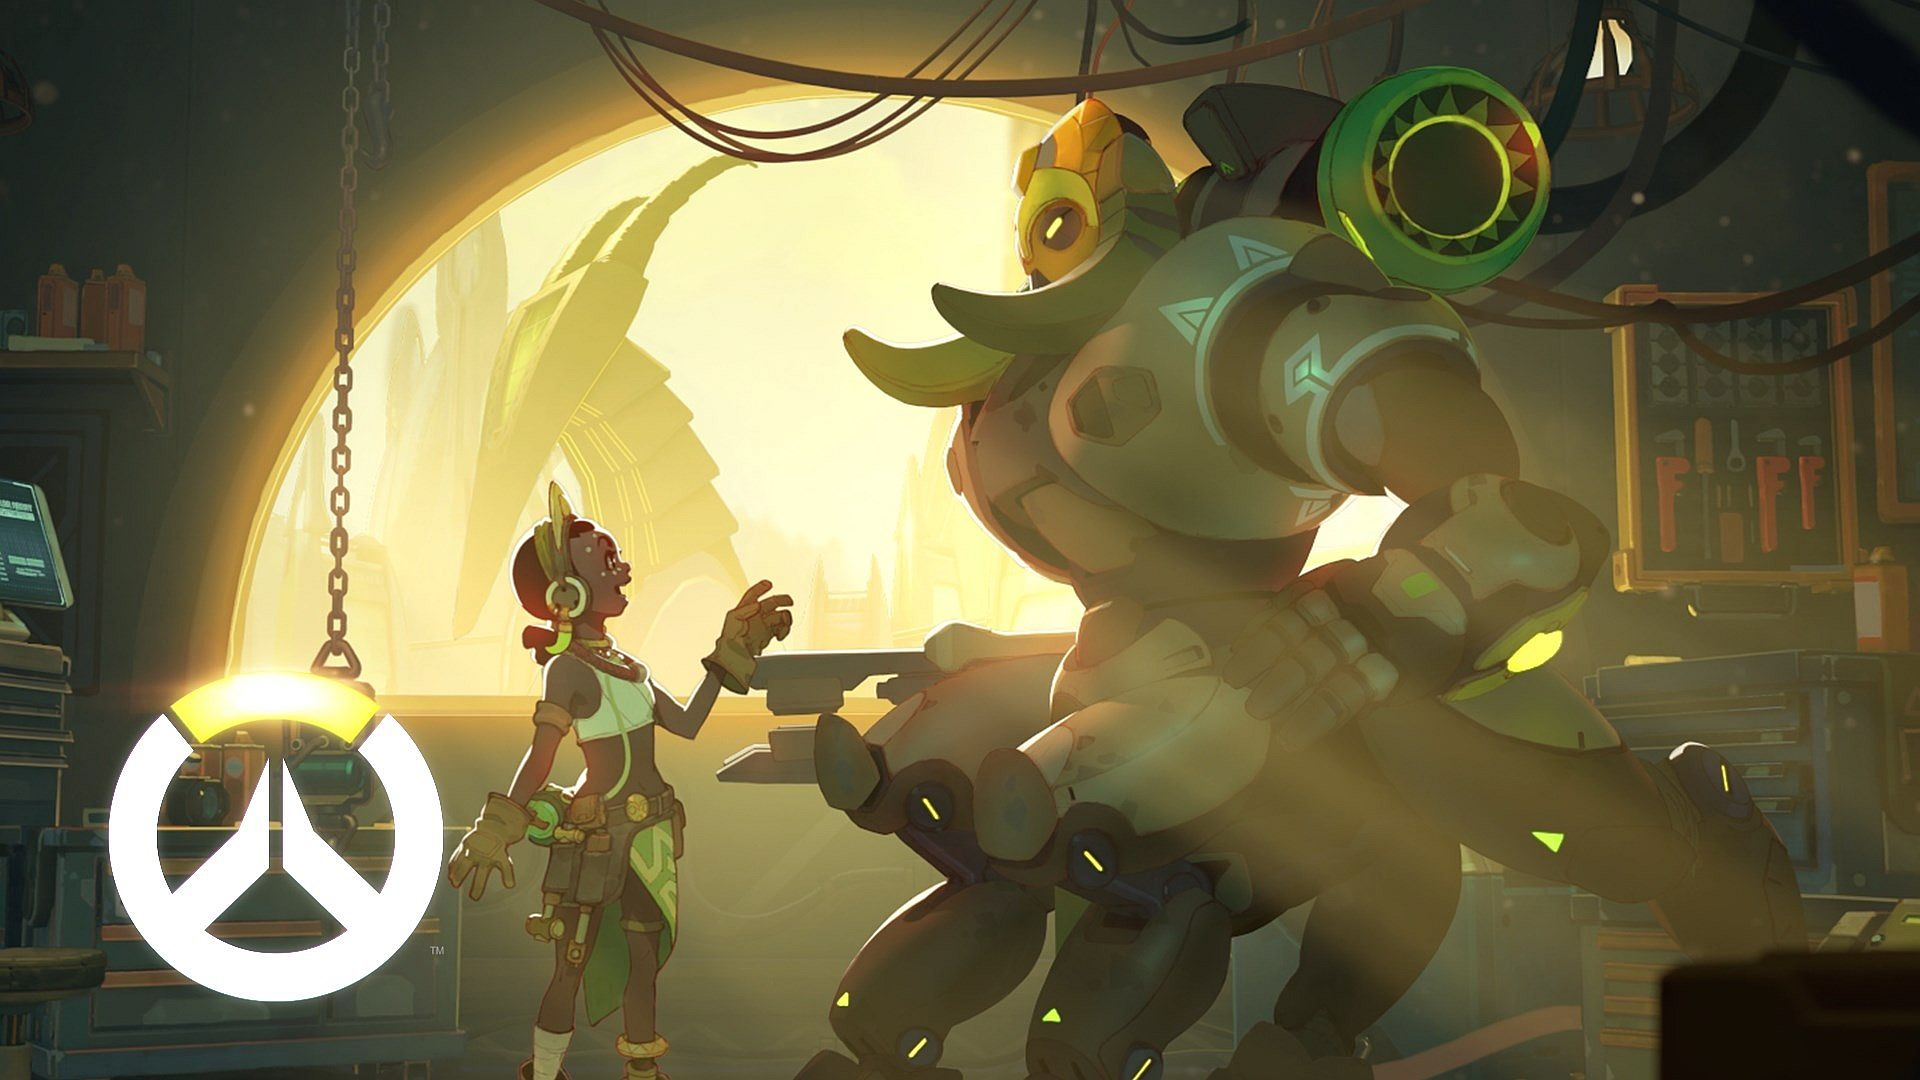 Orisa Overwatch New Tank How To Play Tips and Tricks, Blizzard Entertainment